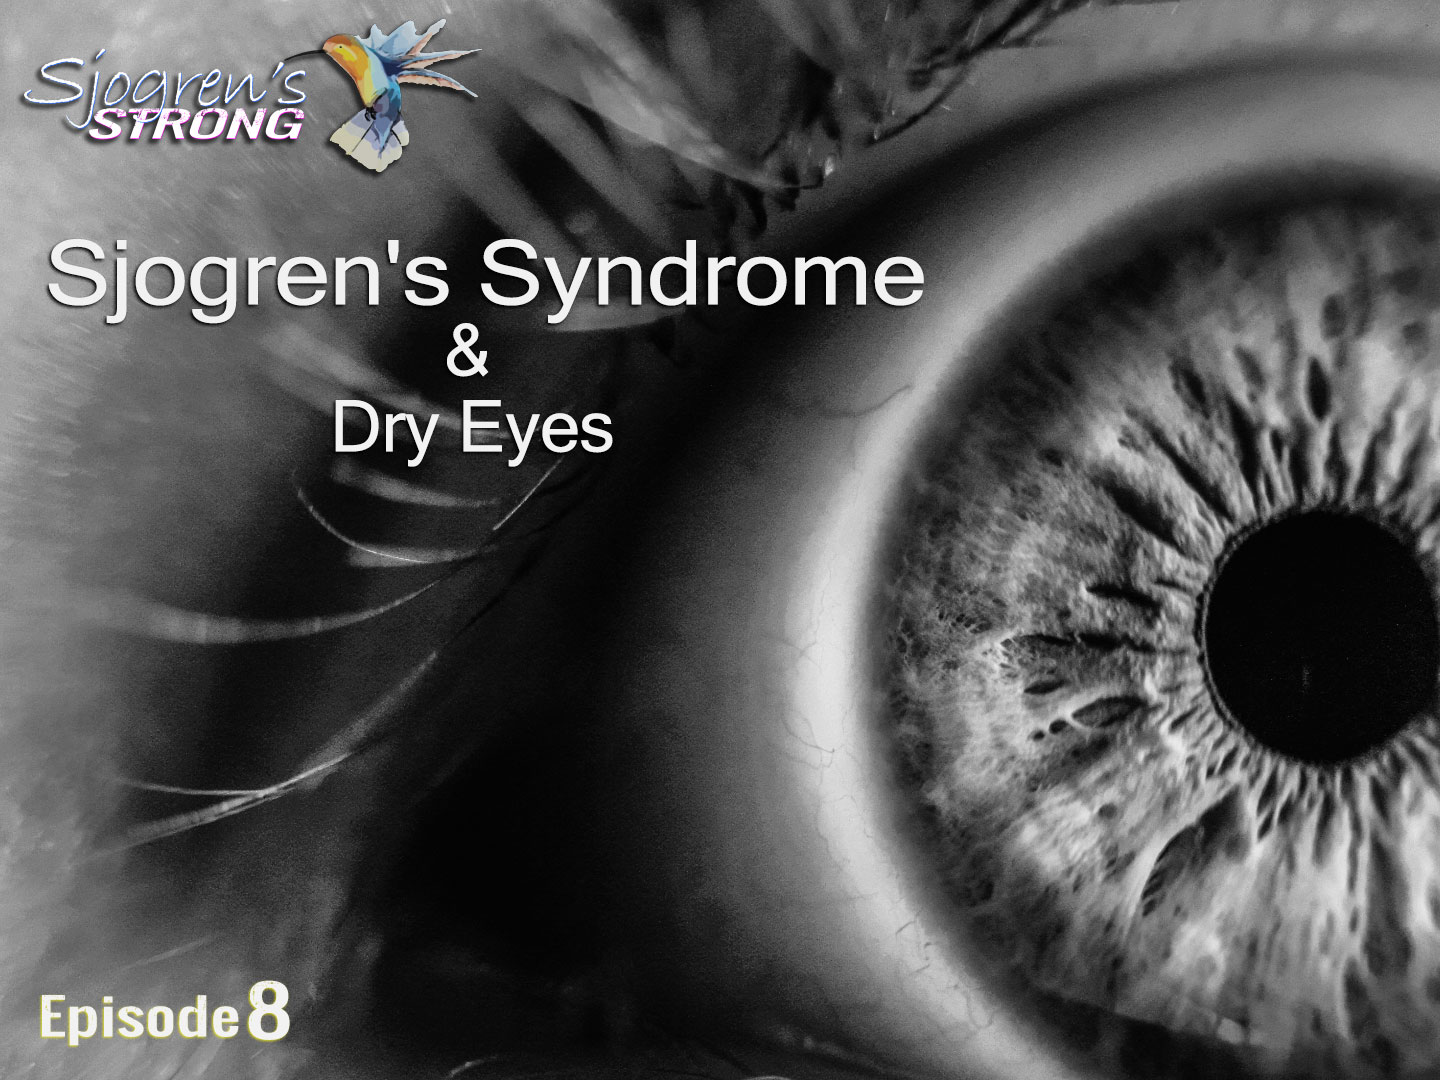 Sjogren's Syndrome and Dry Eyes